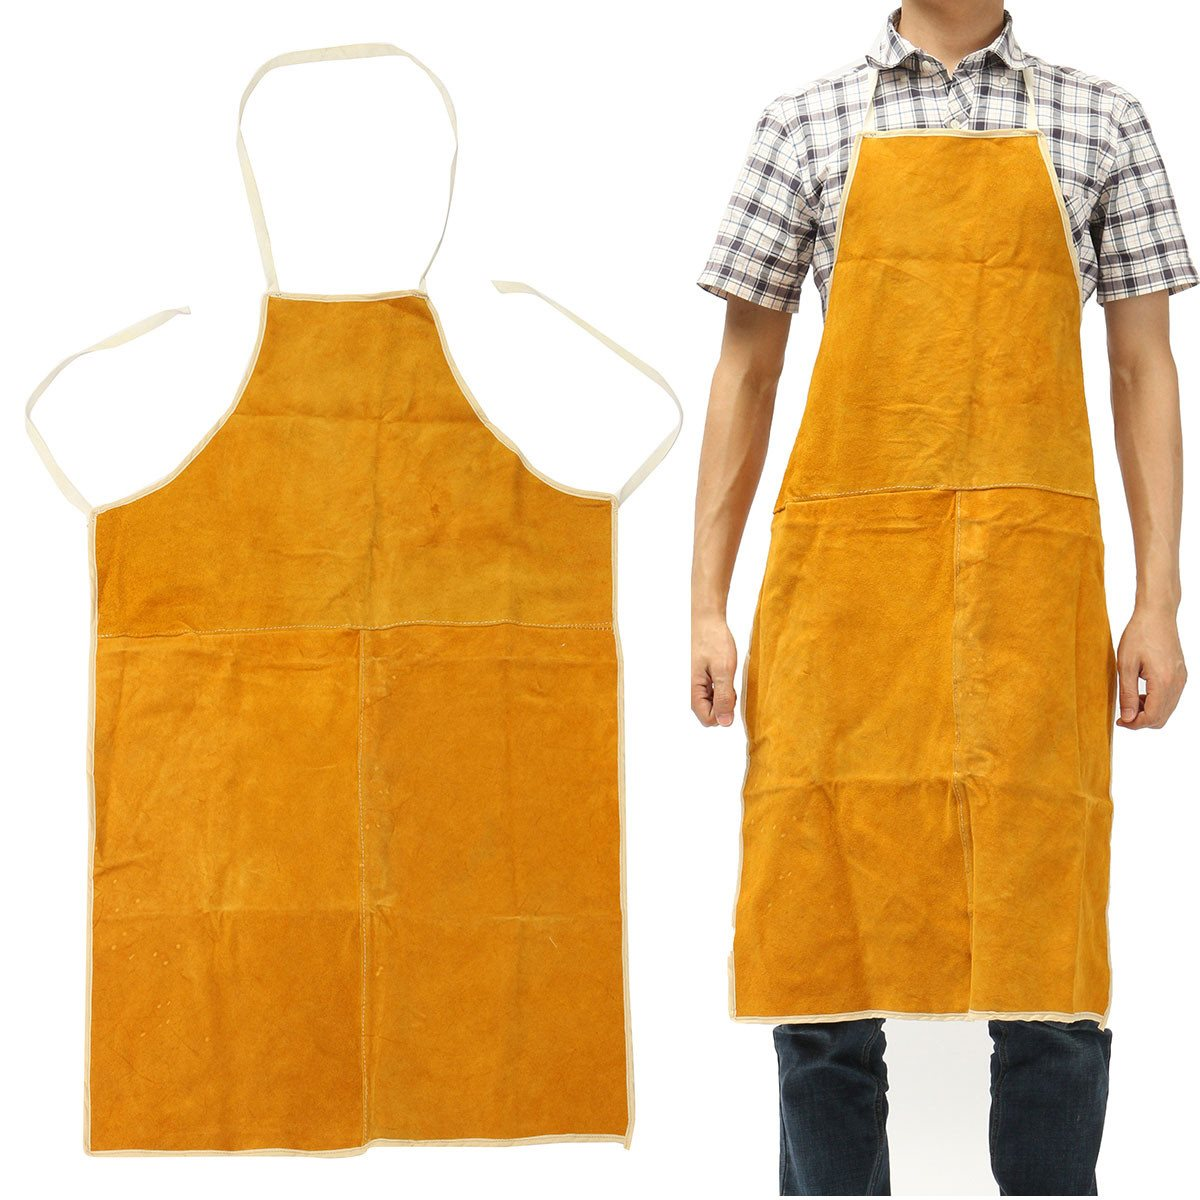 Cheap Fire Retardant Clothing >> Popular Leather Work Apron-Buy Cheap Leather Work Apron ...